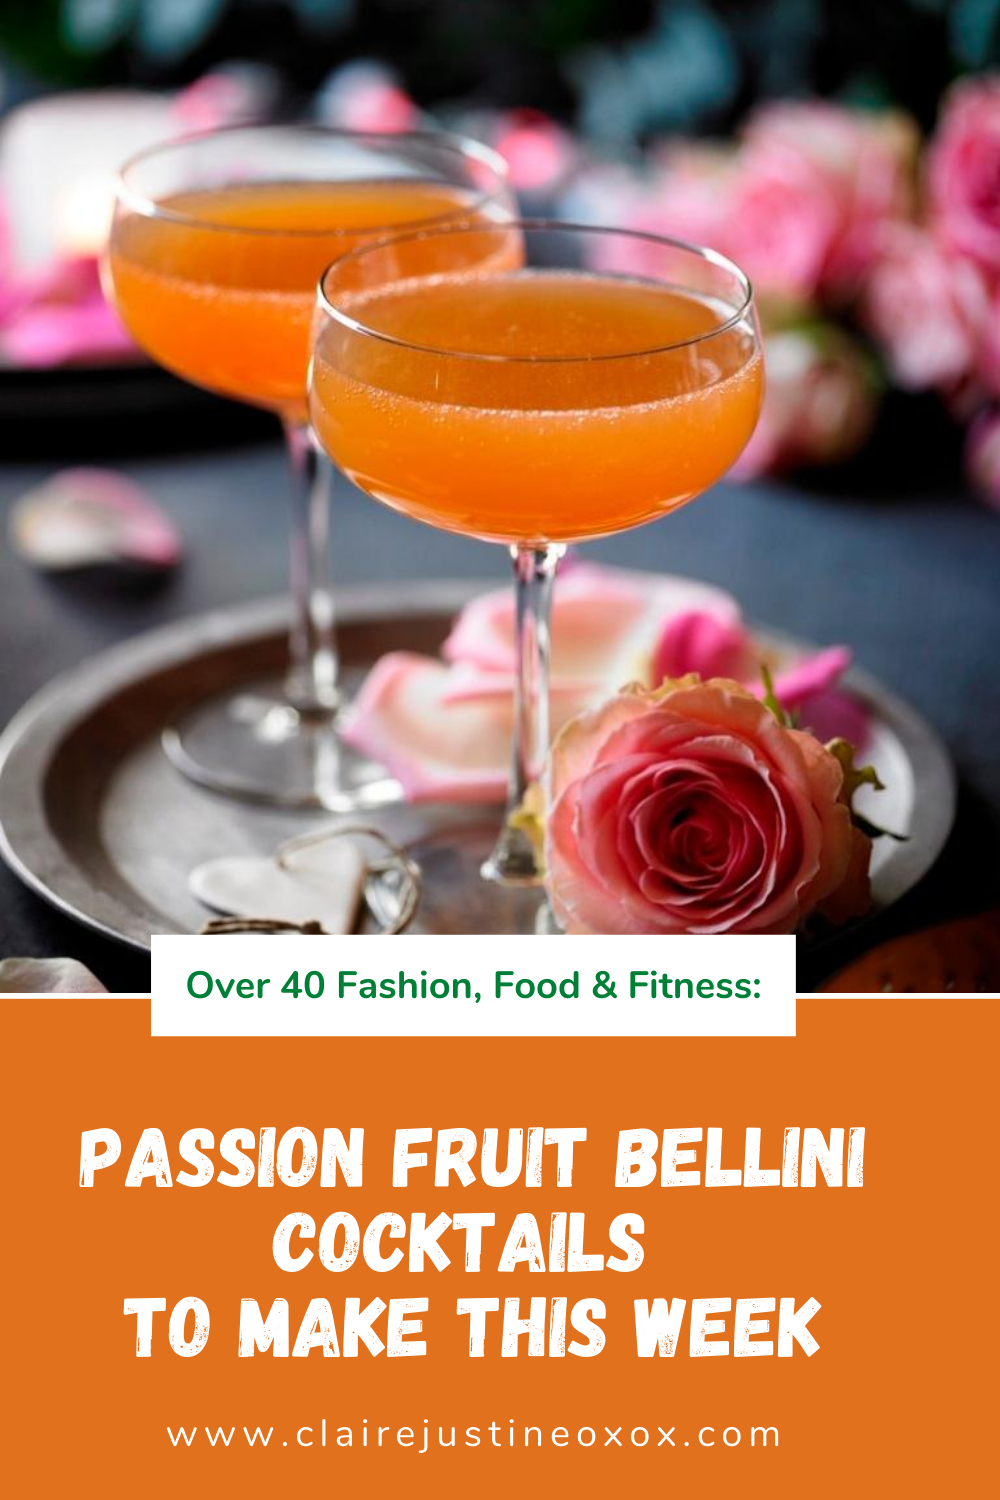 Passion Fruit Bellini Cocktails To Make This Week